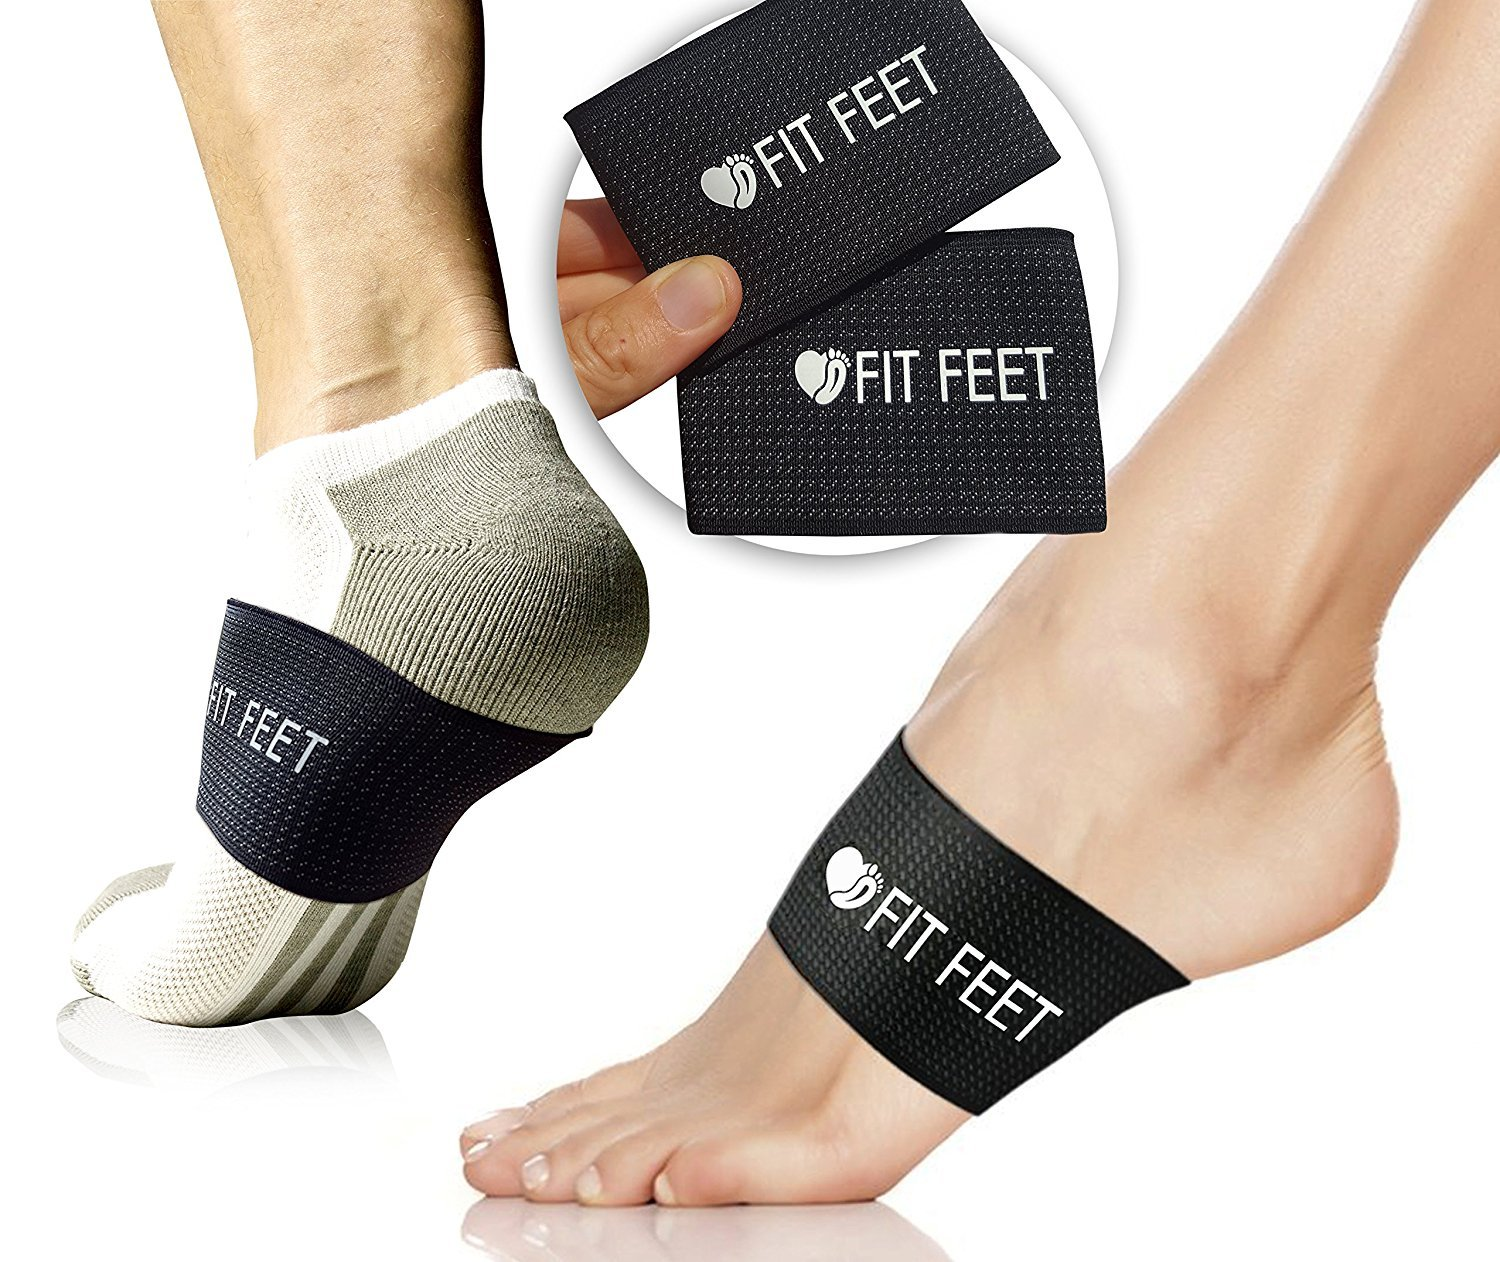 Fit Feet Compression Arch Support - 2 Plantar Fasciitis Braces/Sleeves. GUARANTEED Highest Fit Feet Content. Foot Care, Heel Spurs, Feet Pain, Flat Arches (1 PAIR Black - One Size Fits All)